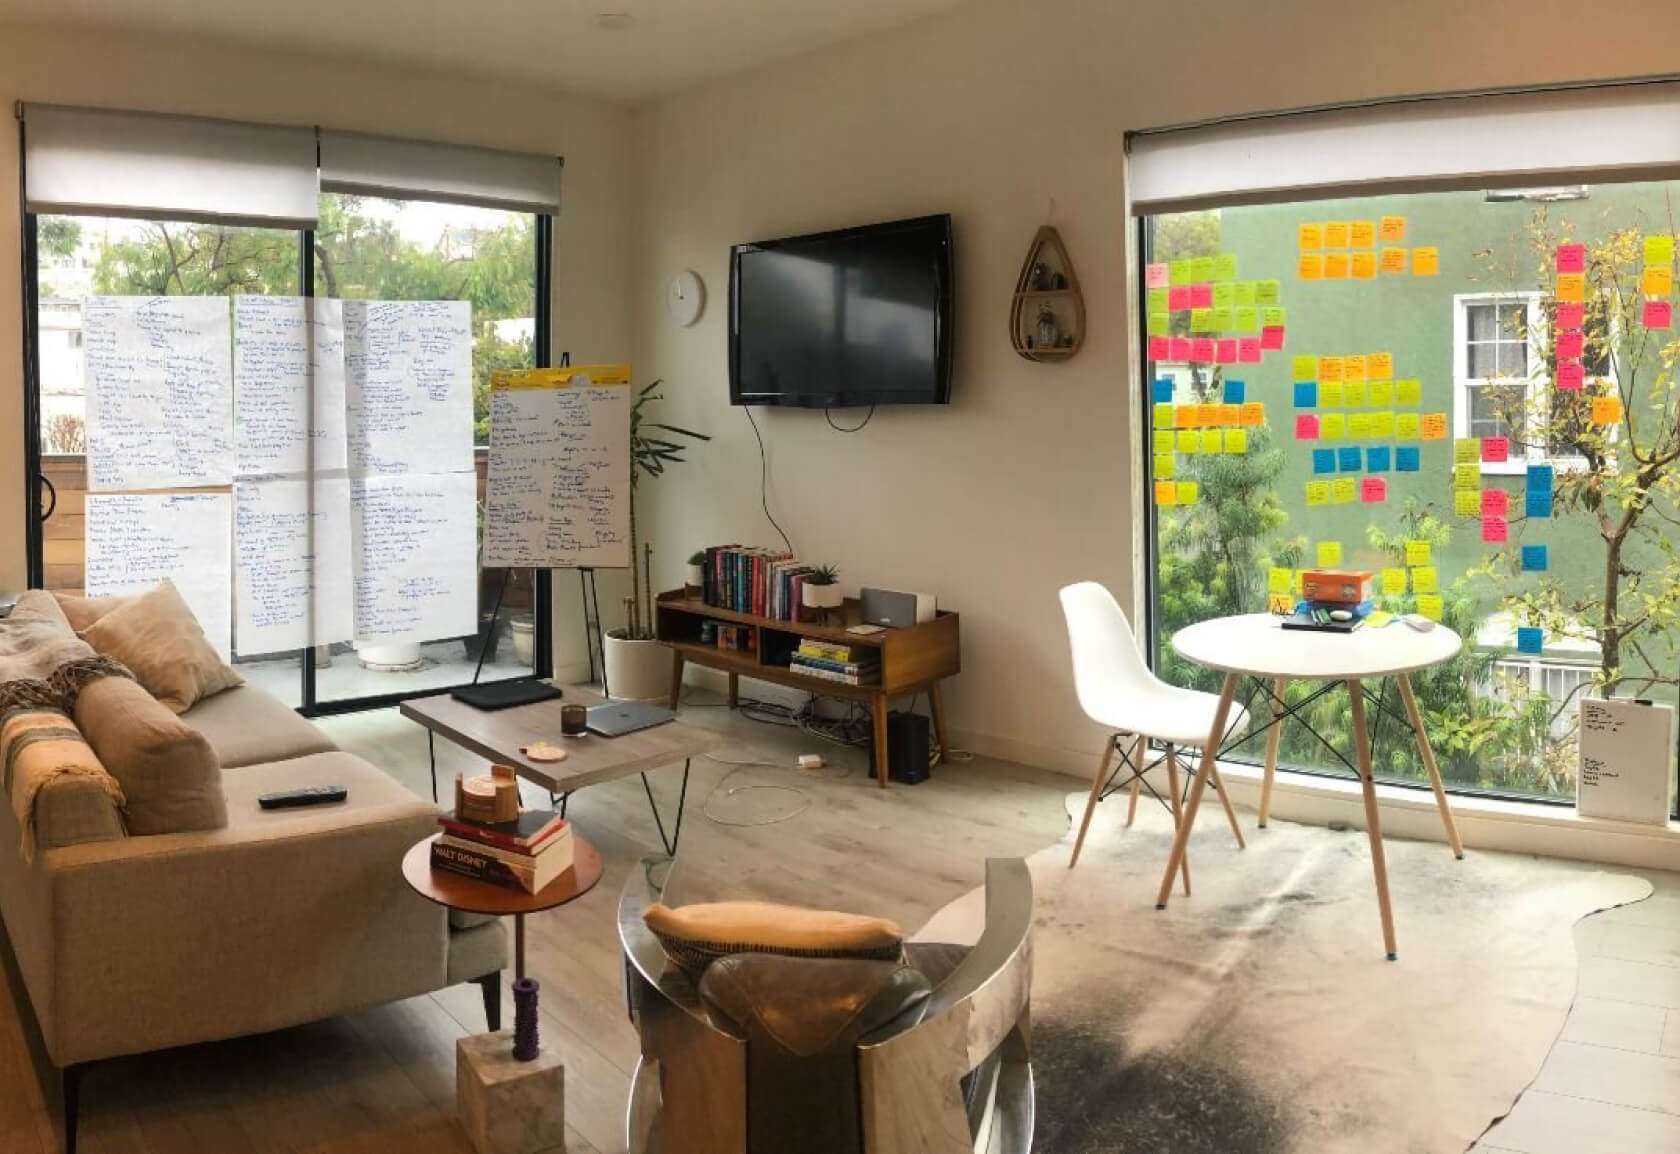 Running a remote workshop, but still using a physical space